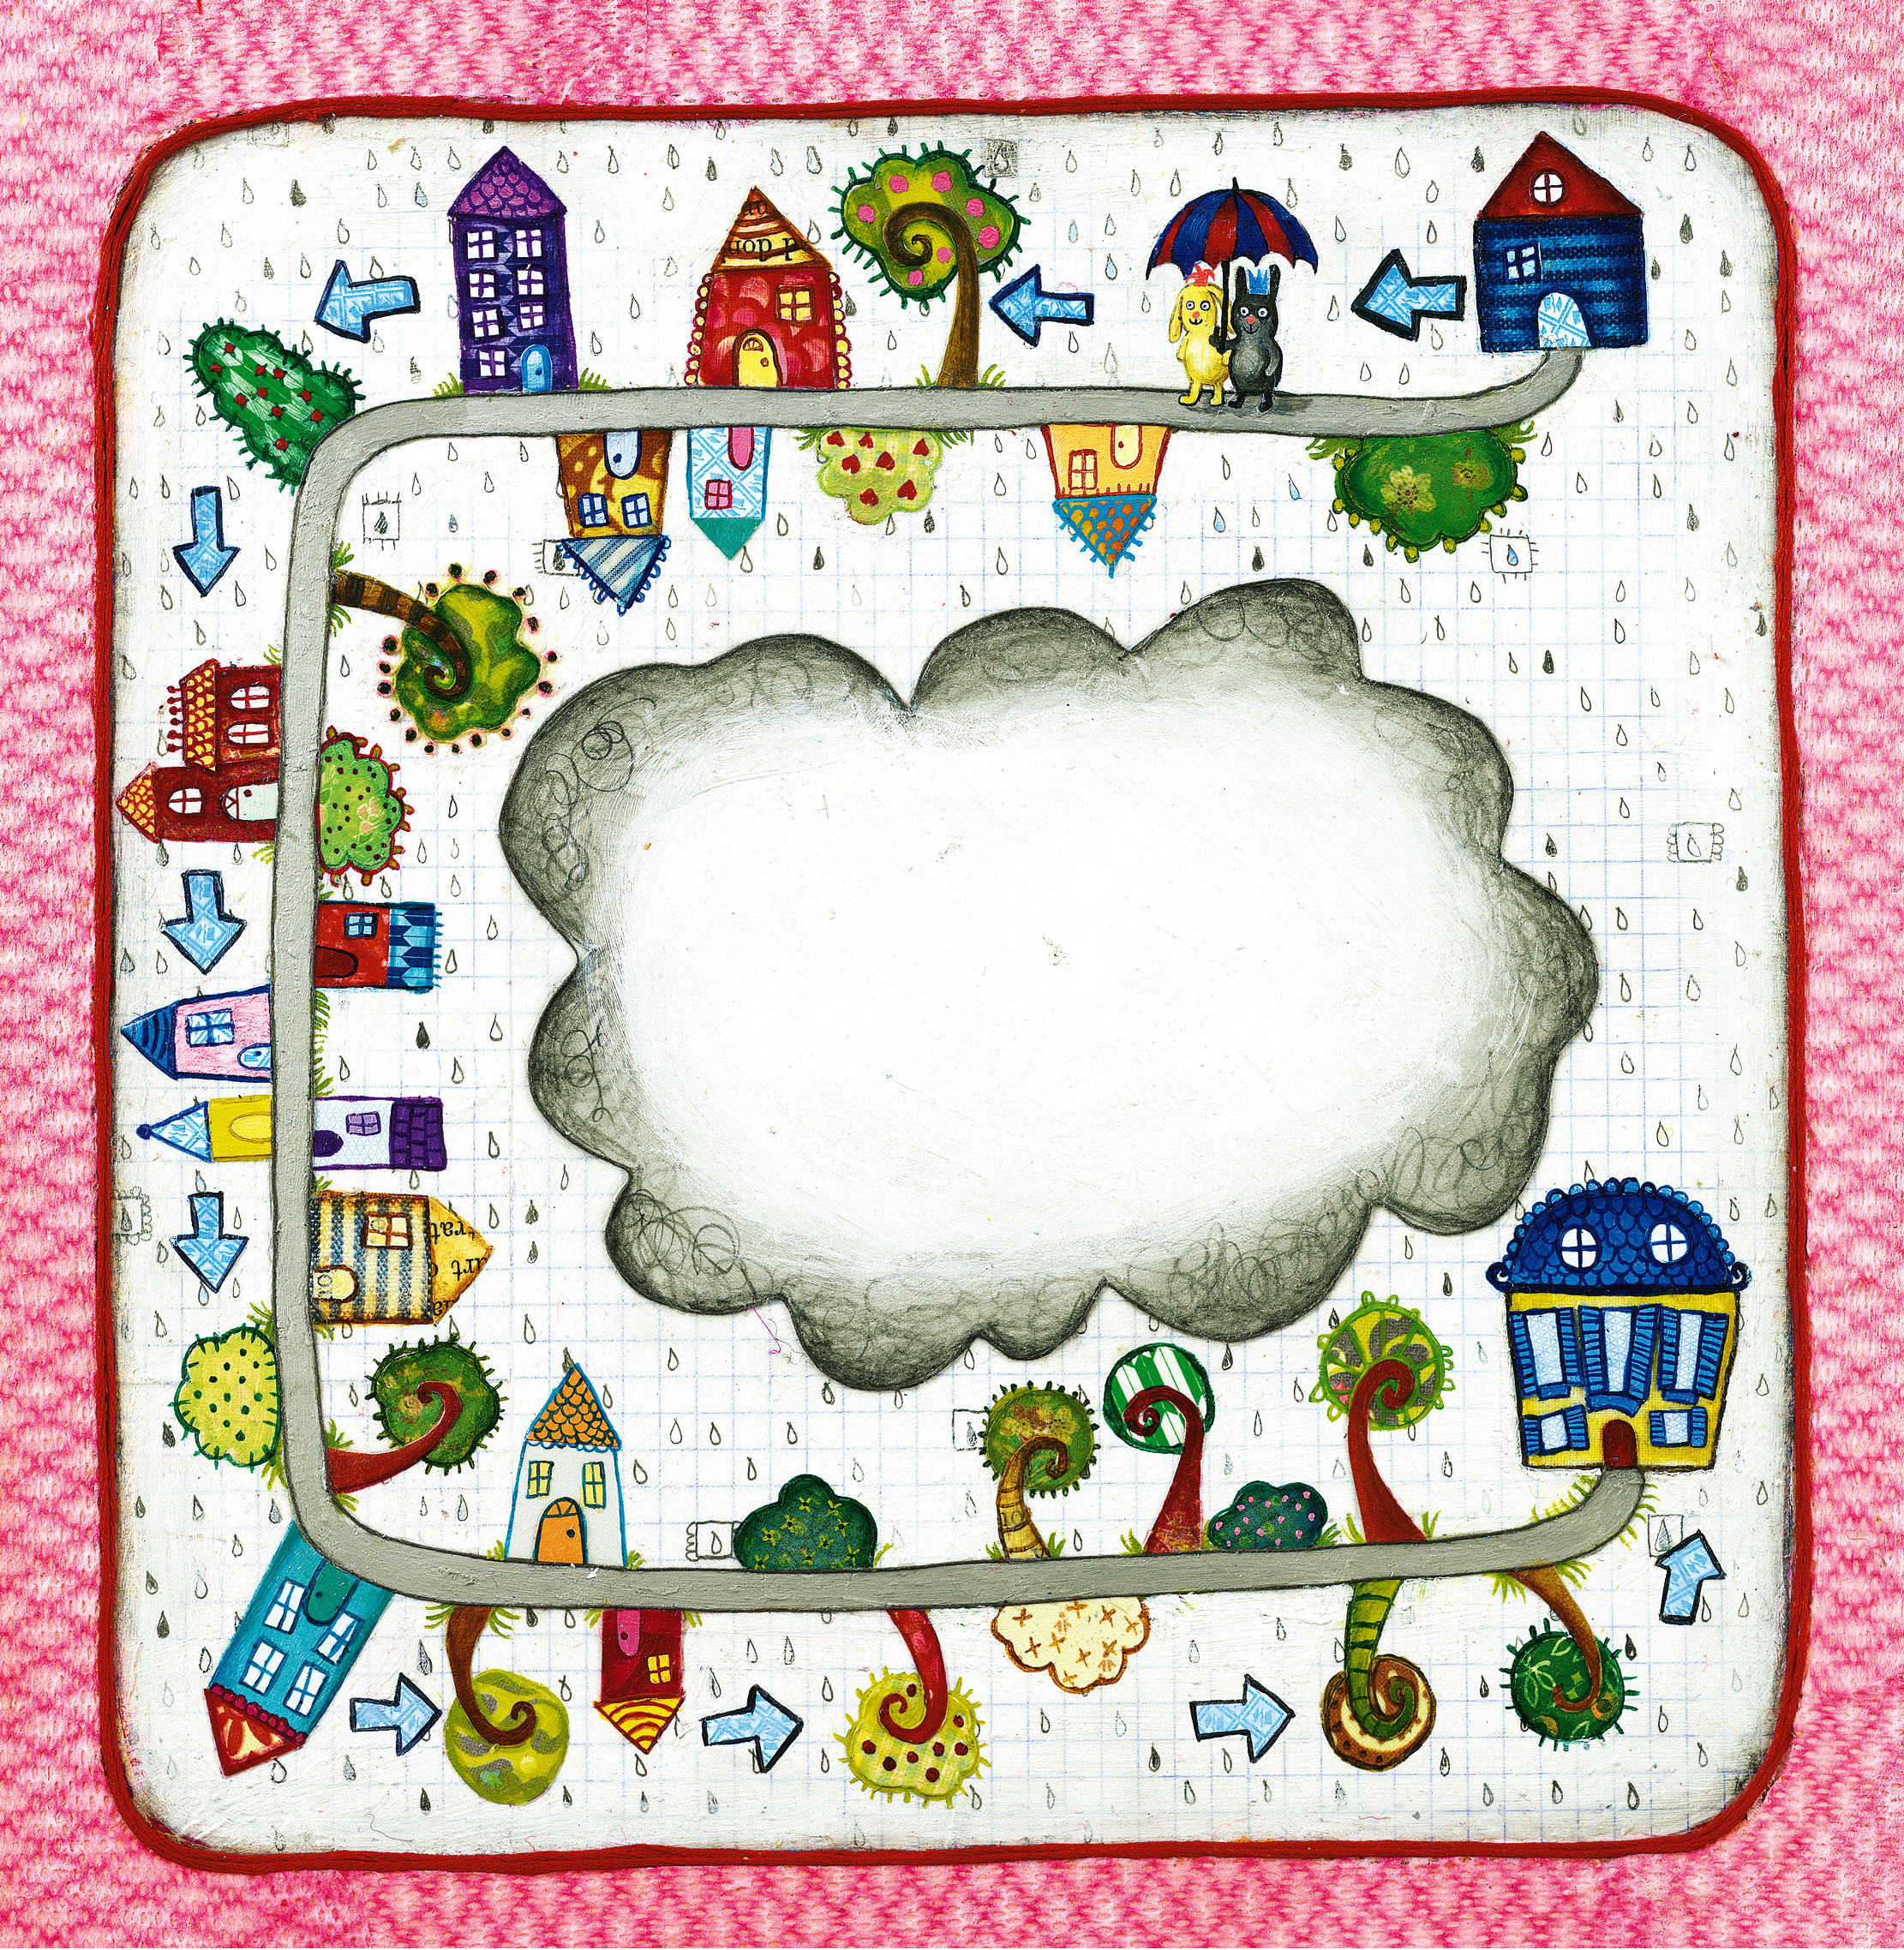 hector-rainy-day-cloud-web.jpg